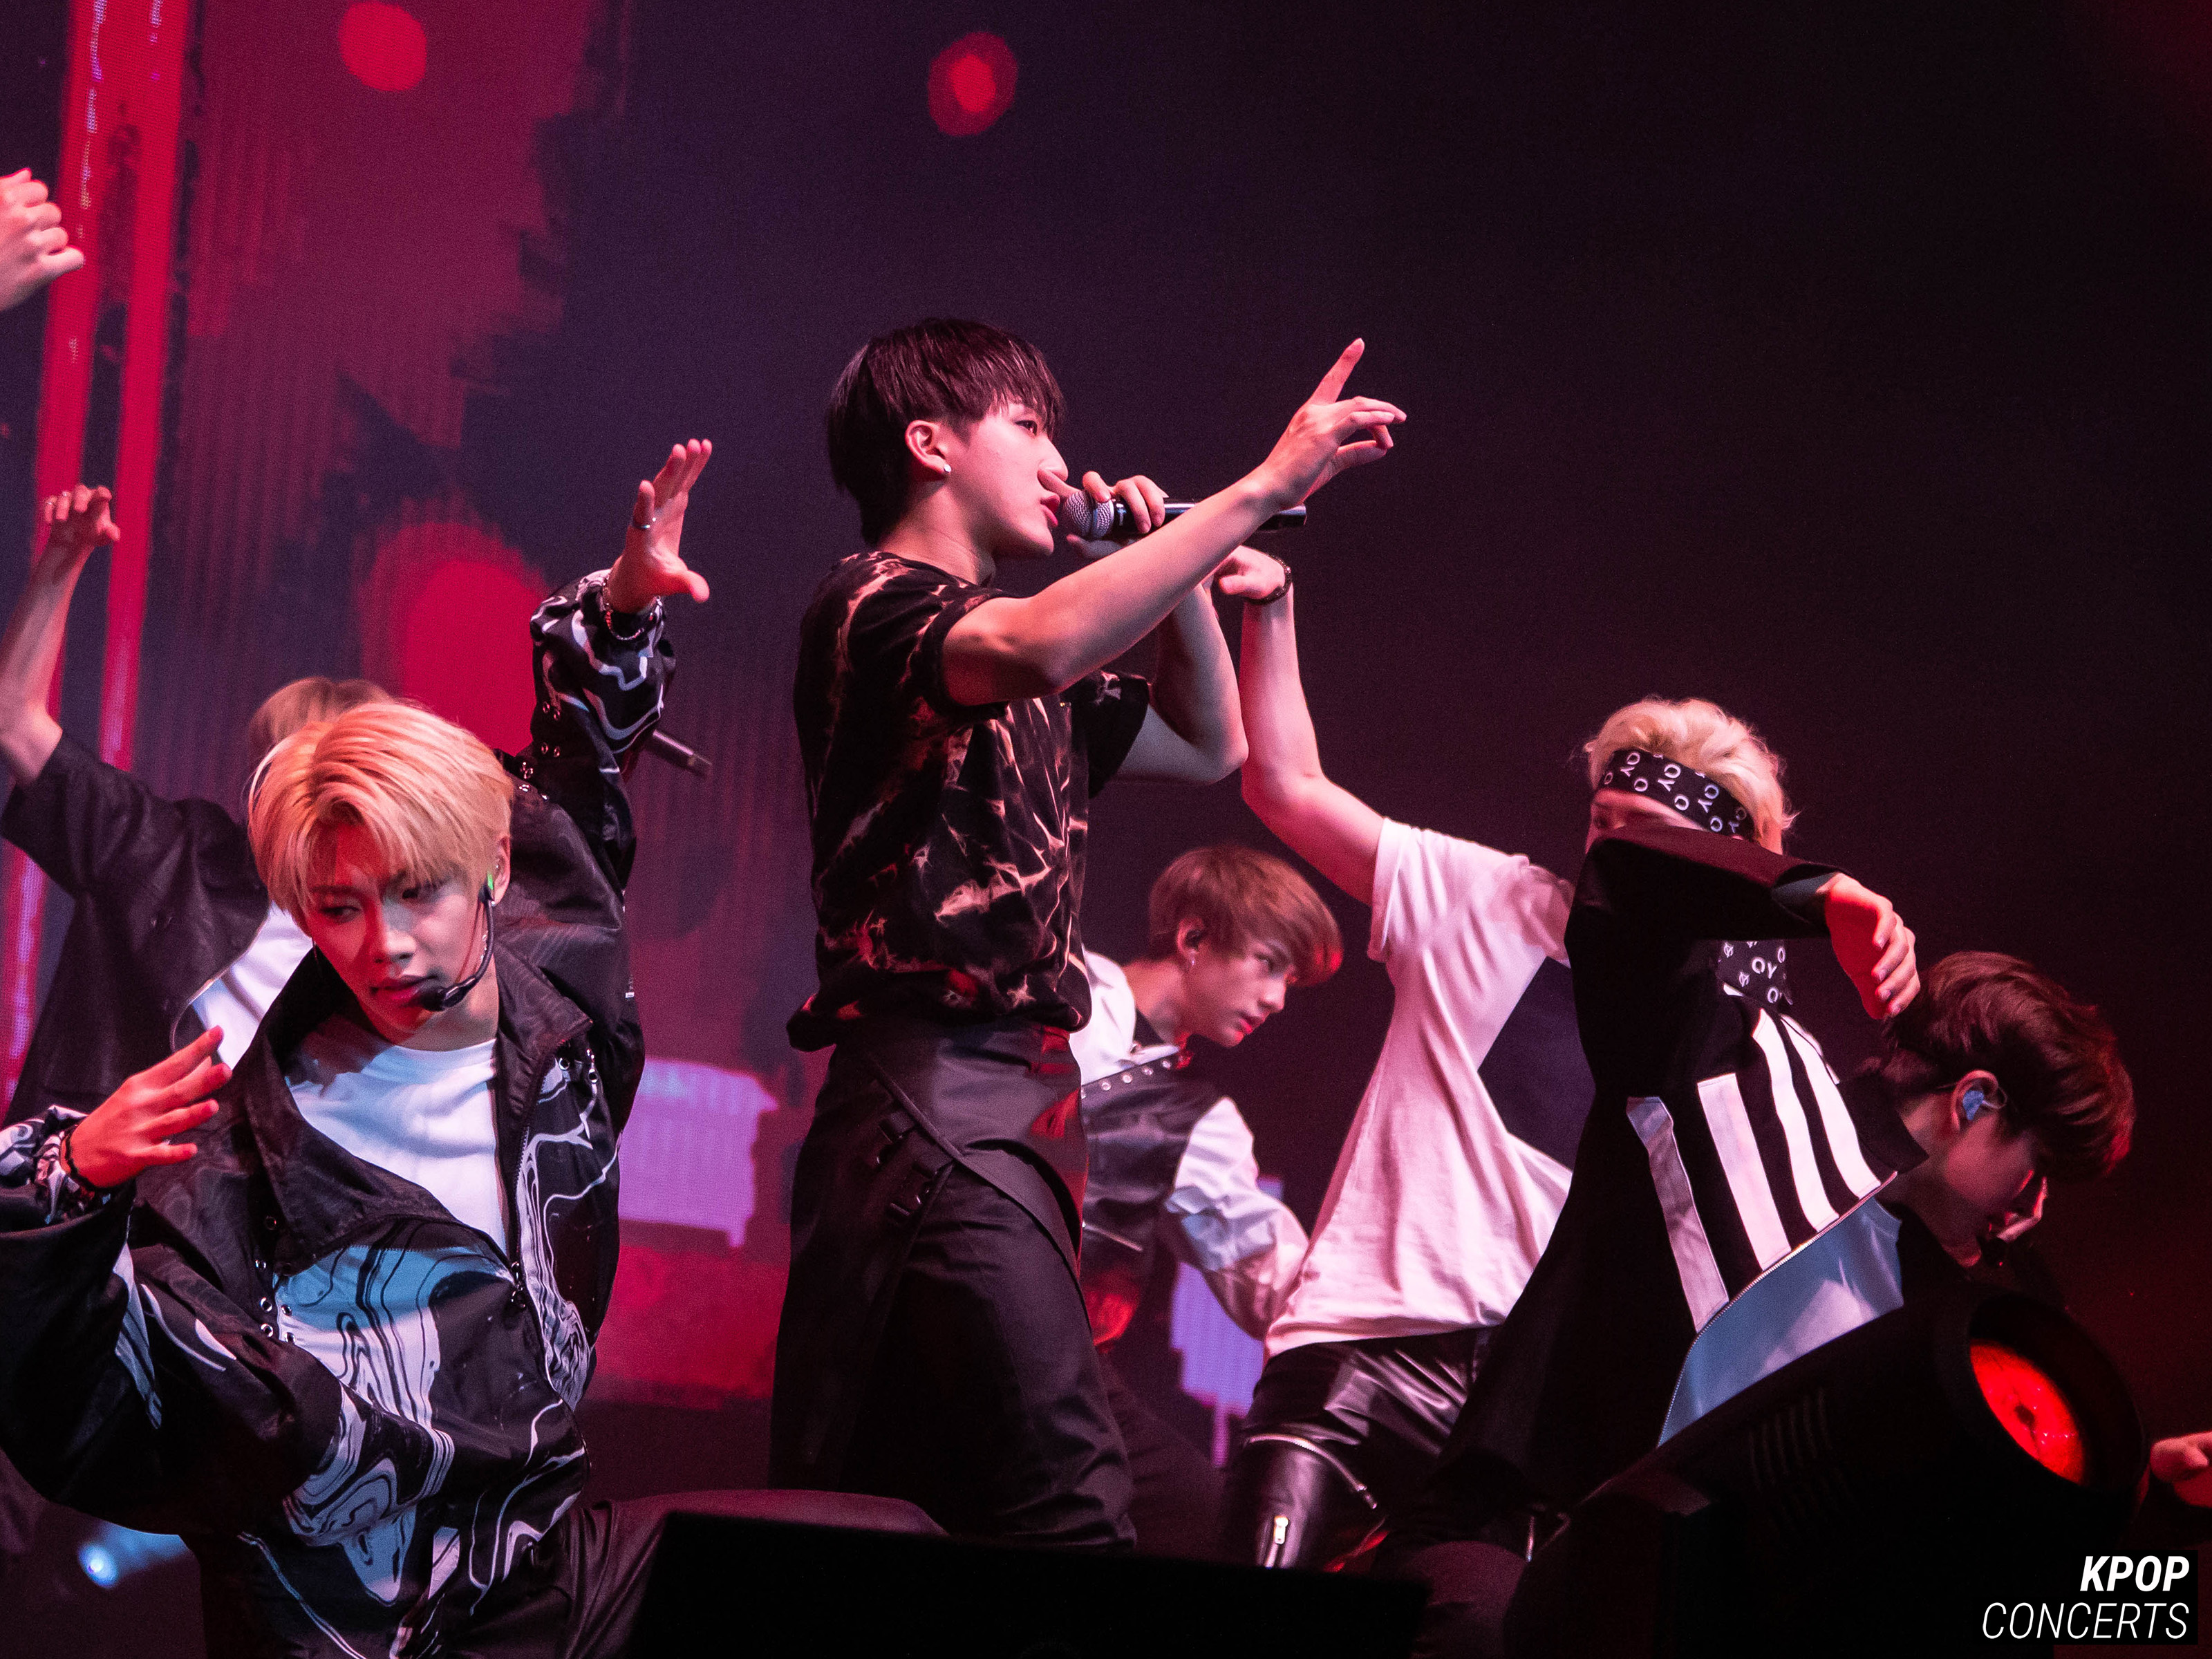 GALLERY: Stray Kids UNVEIL Tour 'I am   ' in LA - K-Pop Concerts